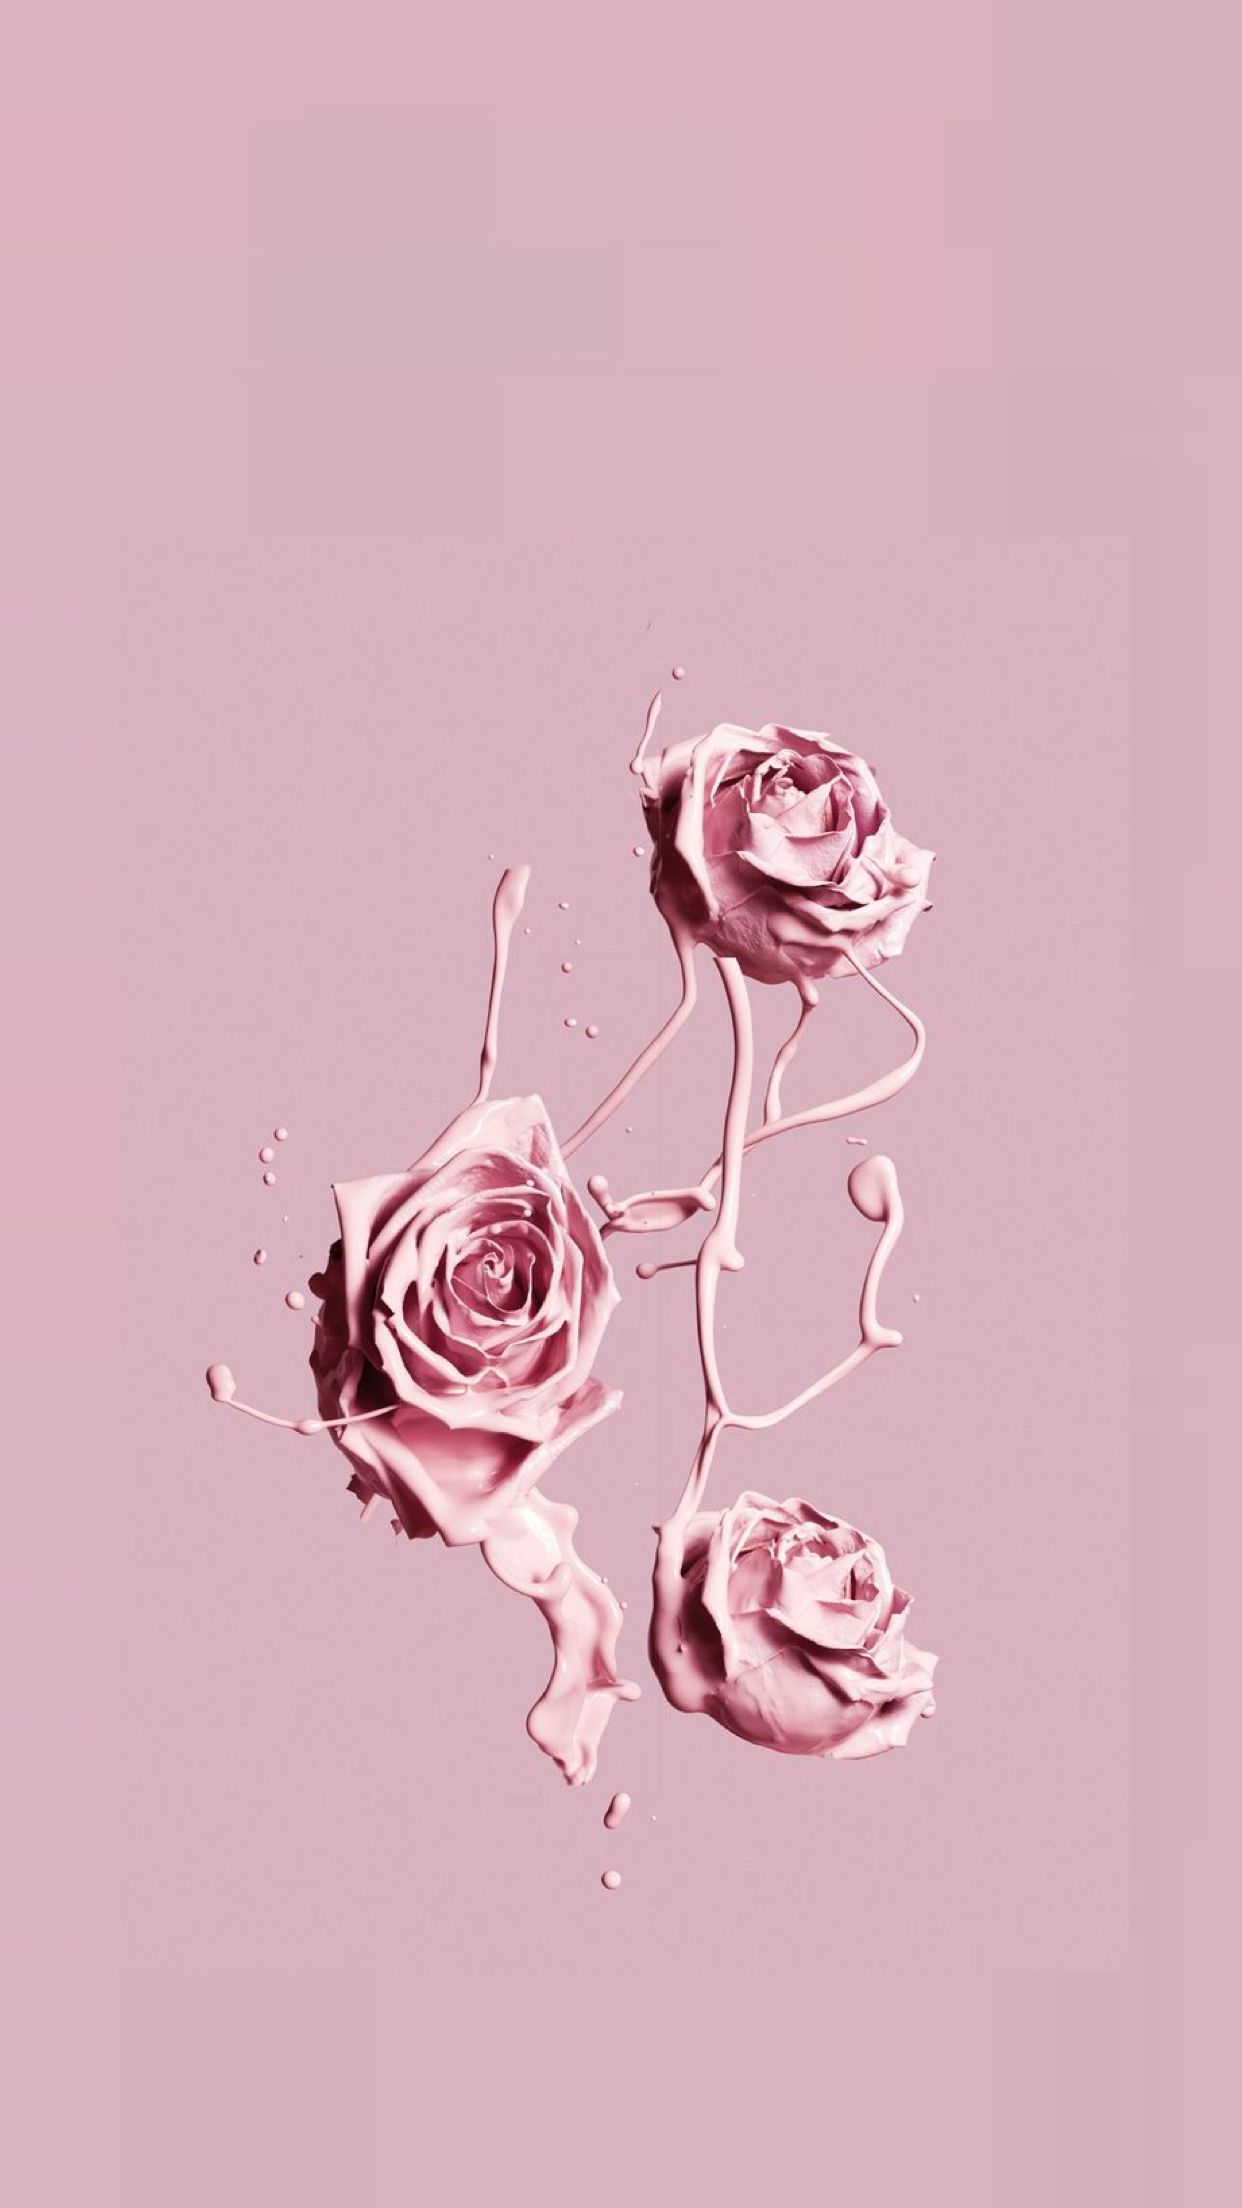 Pin De Forough Wali Em Wallpapers For Iphone Wallpaper De Iphone Rosa Rosas Papel De Parede Fundo Rosa Para Iphone